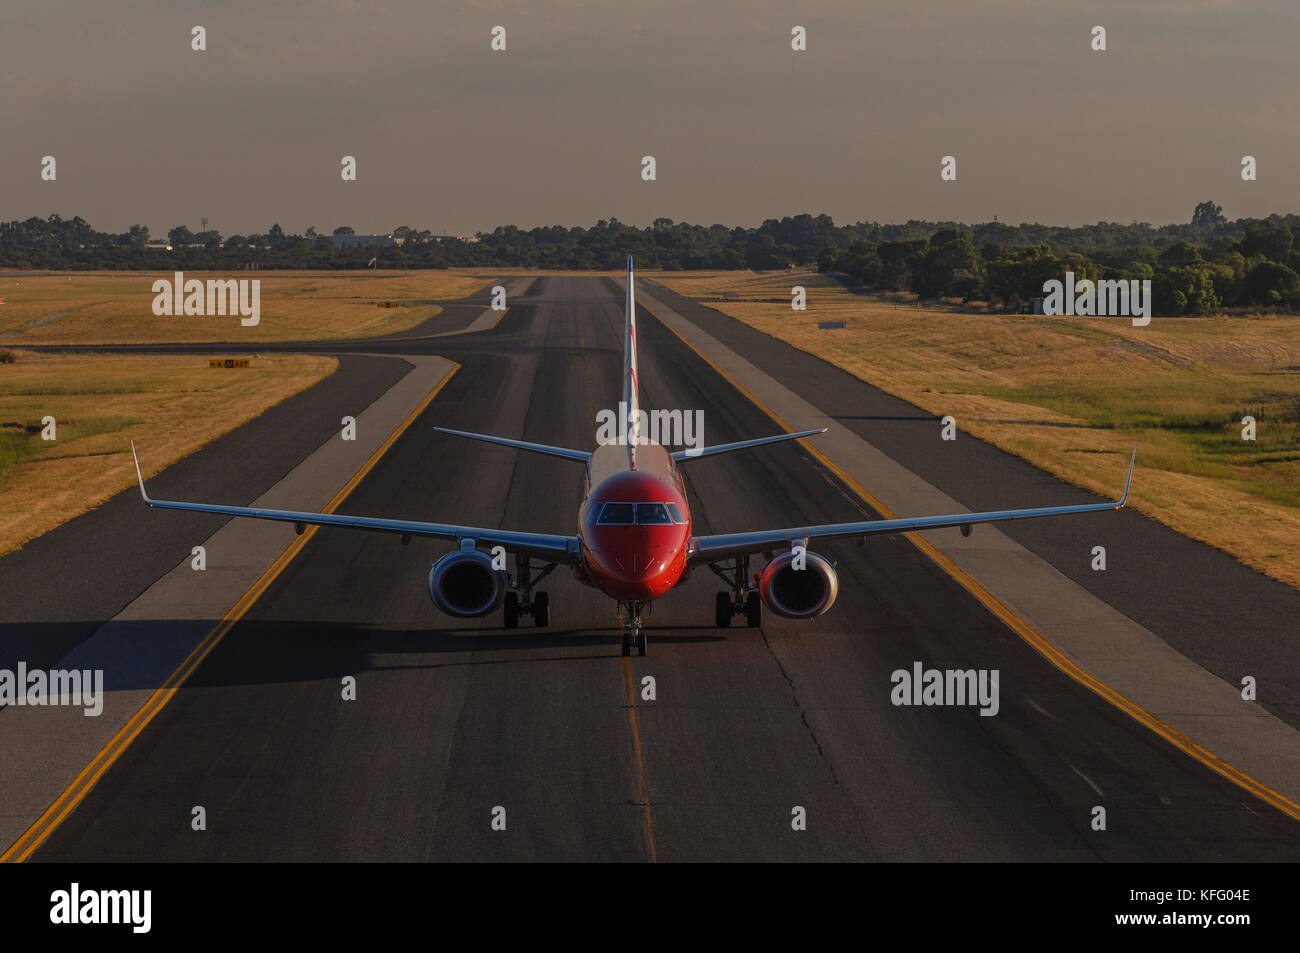 An Embraer 190 airliner, from Virgin Blue, arriving at Perth airport, Western Australia. - Stock Image